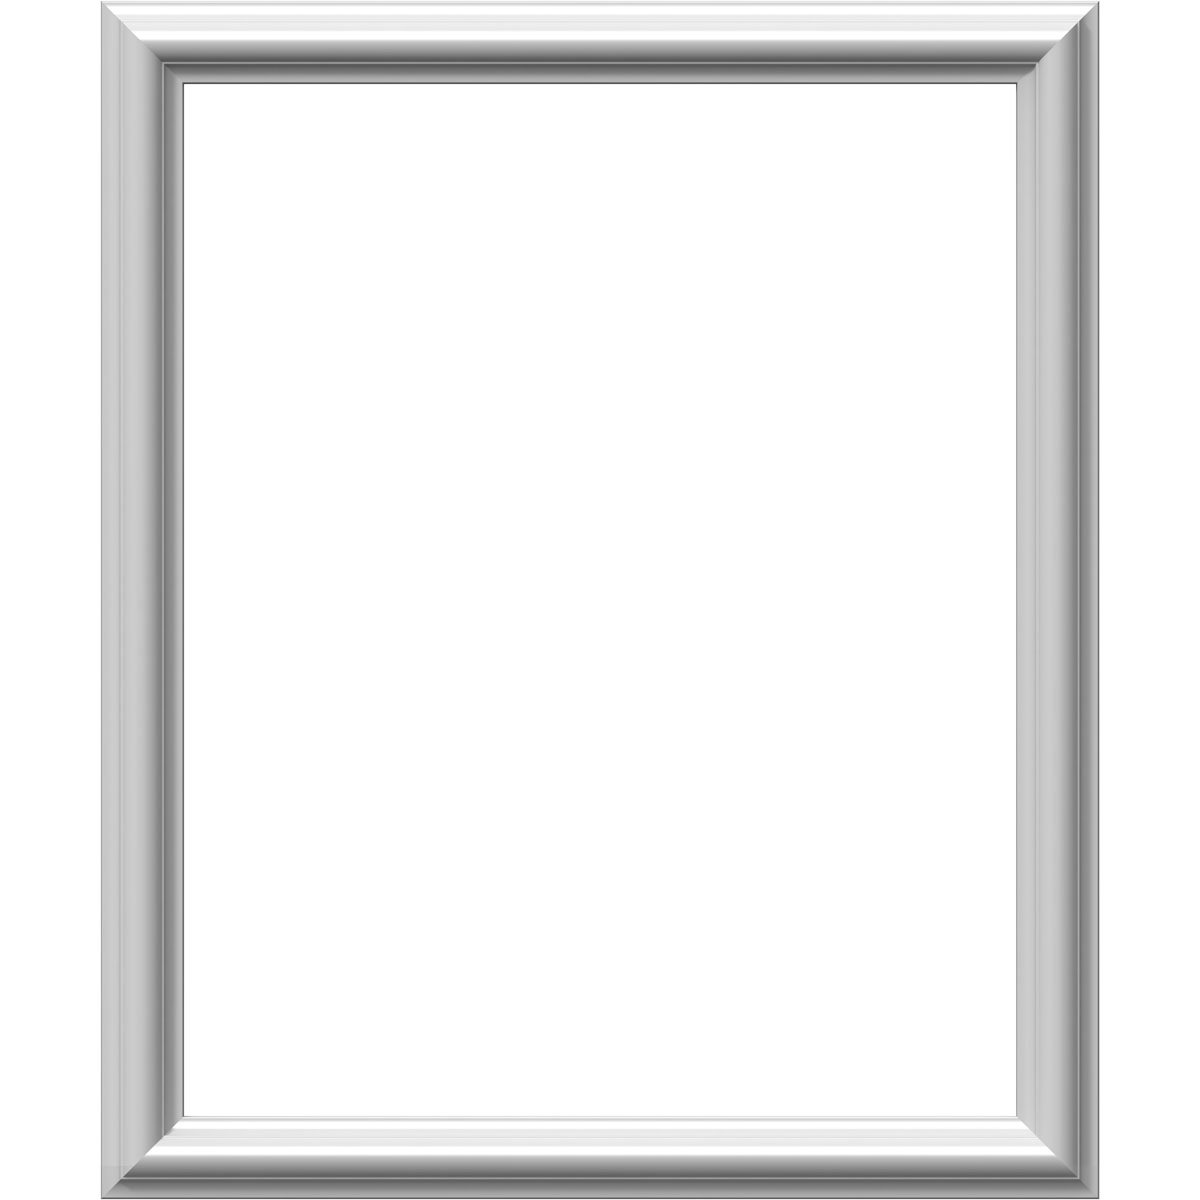 Ekena Millwork PNL20X24AS-01-CASE-4 20''W x 24''H x 1/2''P Ashford Molded Classic Wainscot Wall Panel (4-Pack), x x, Factory Primed White, 4 Piece by Ekena Millwork